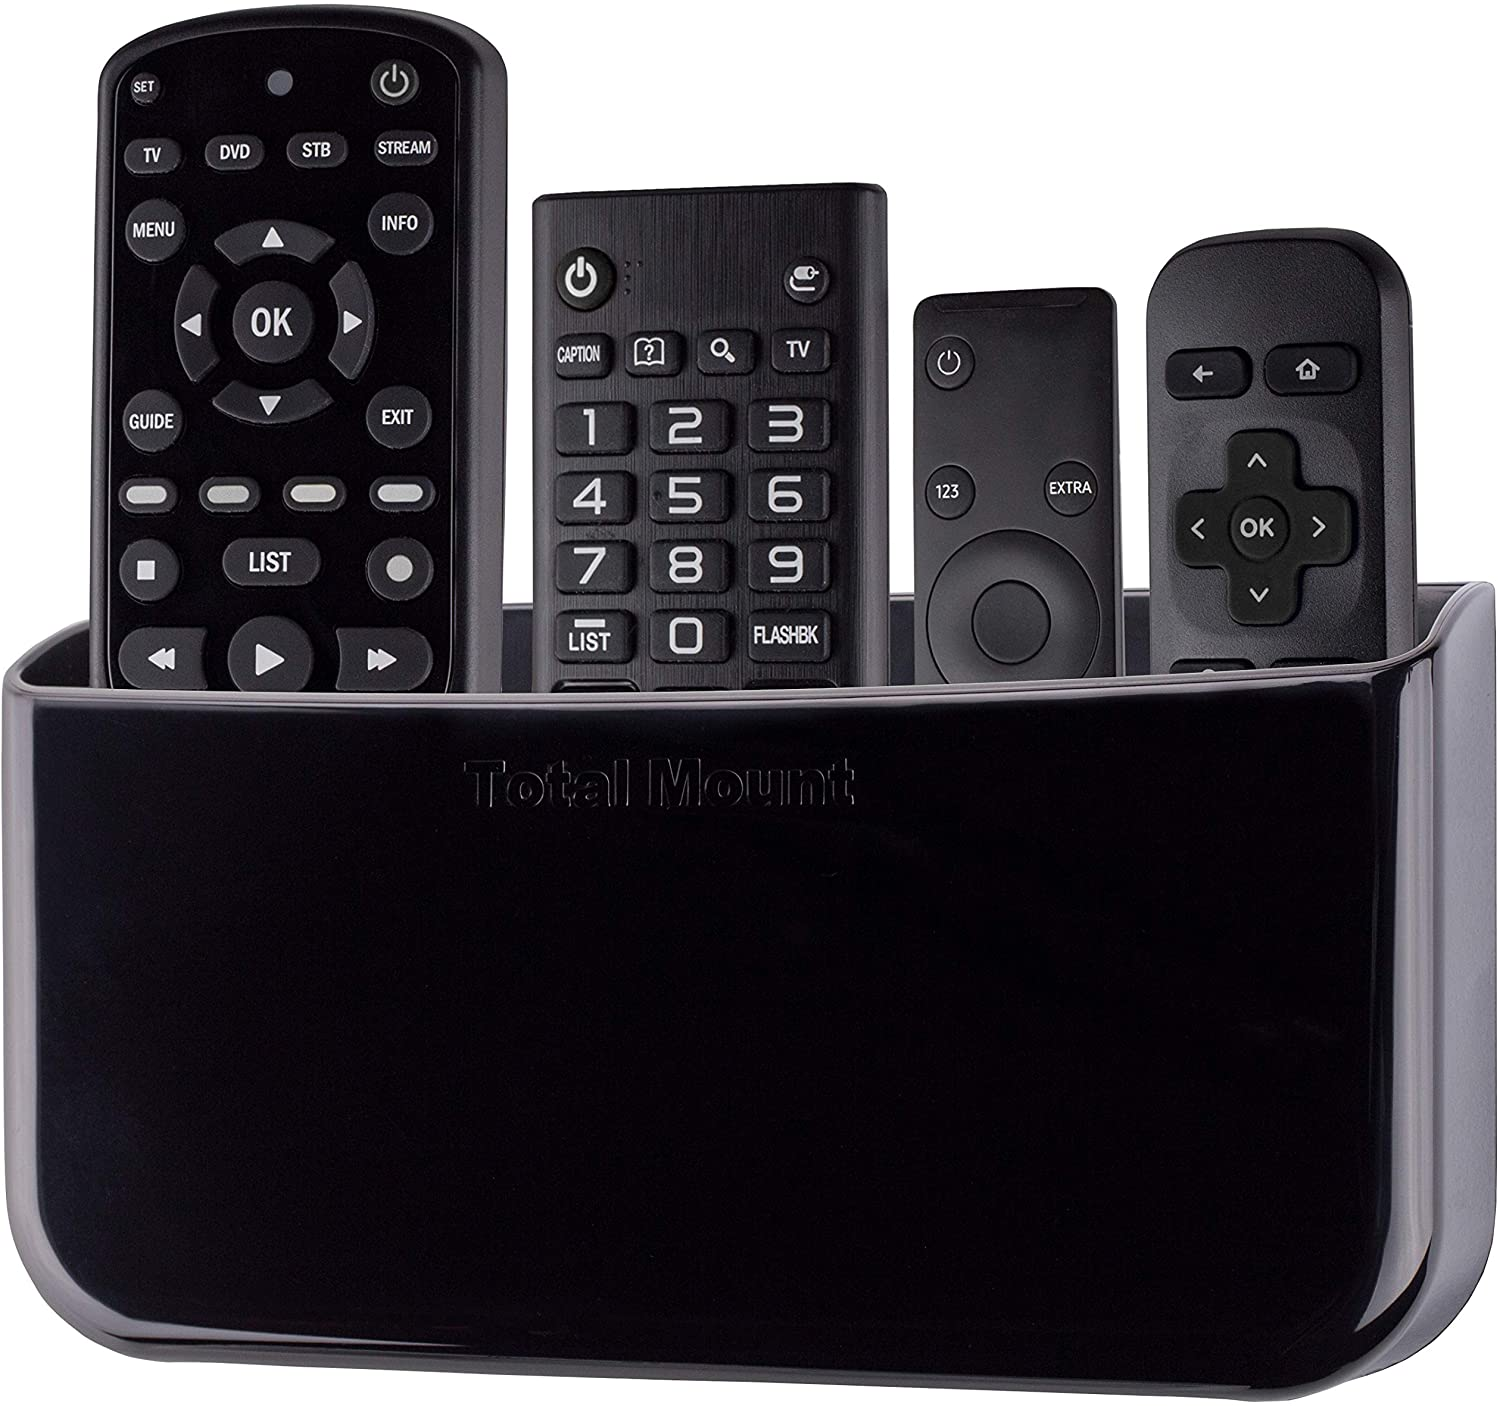 TotalMount Hole-Free Remote Holder $14.99 Coupon